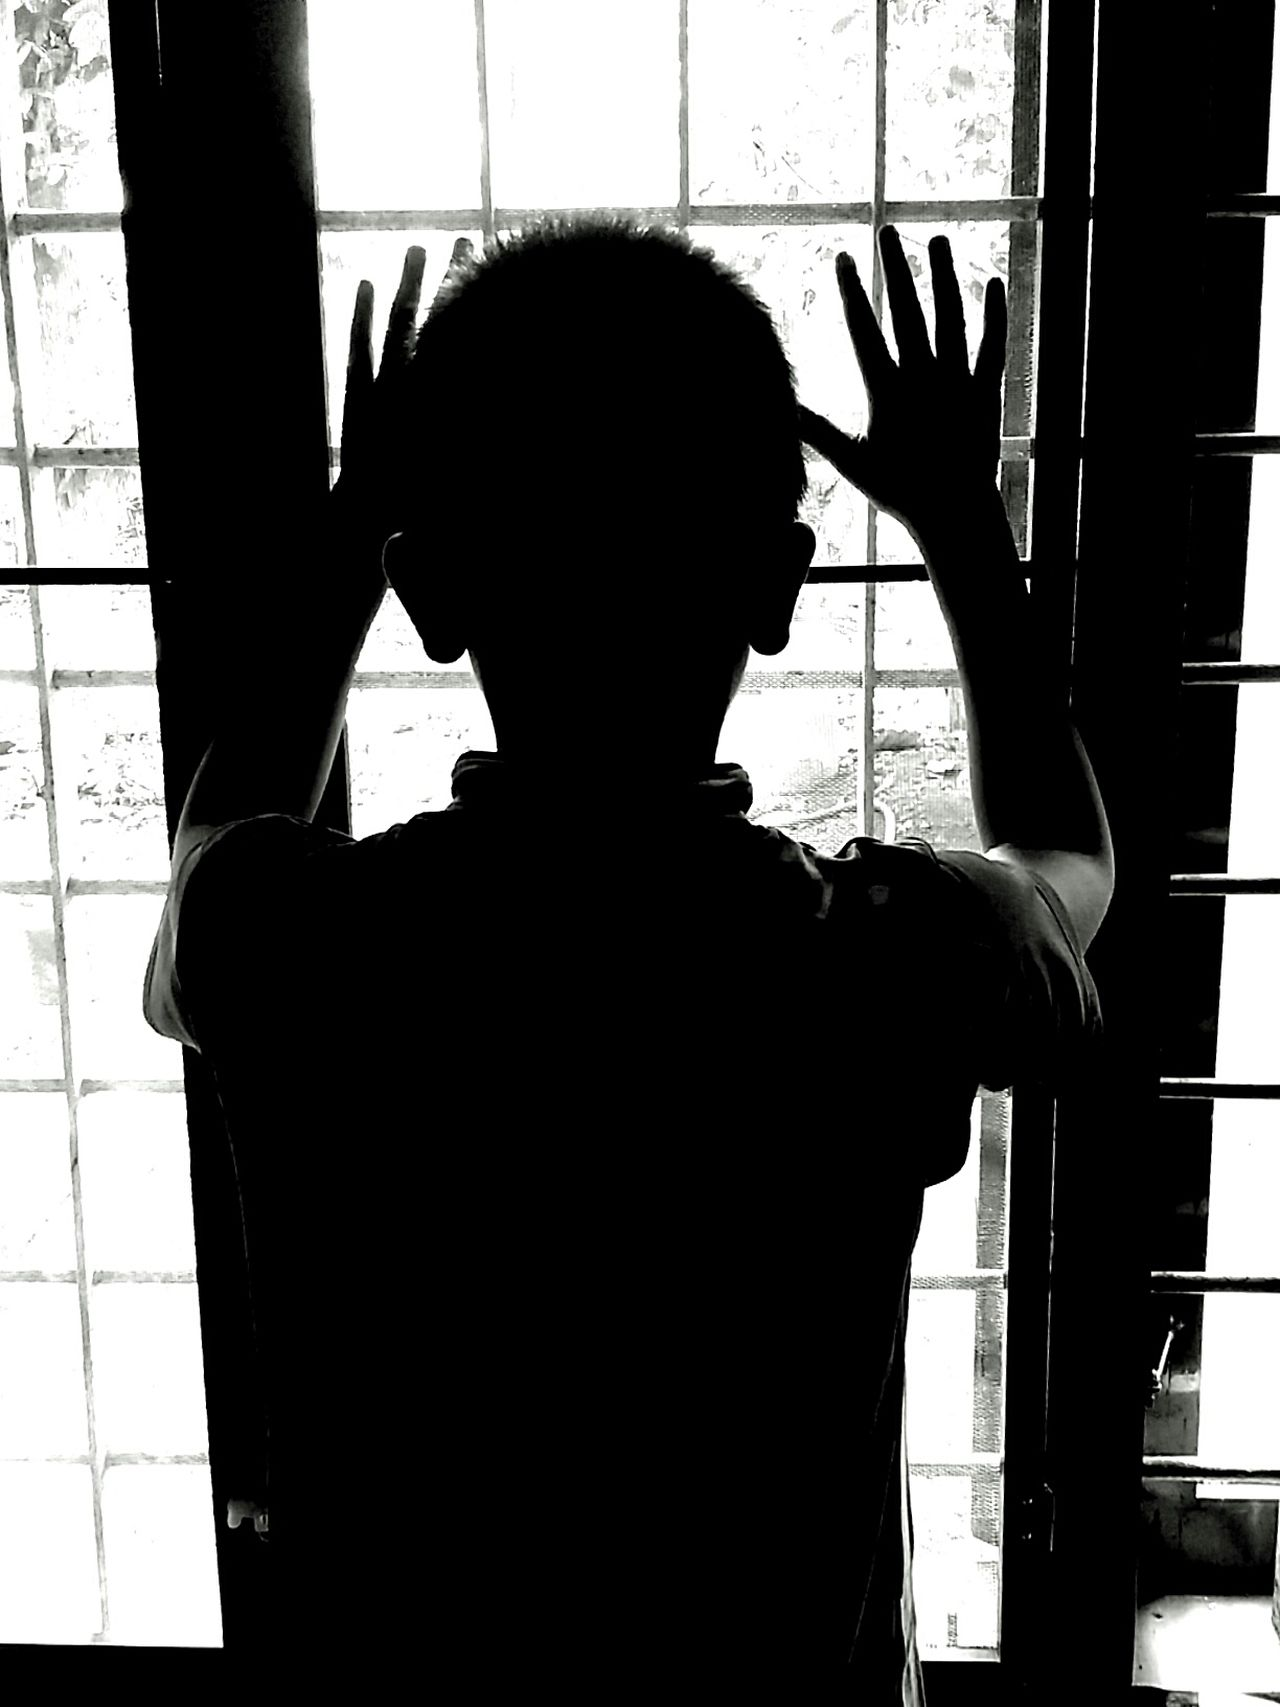 To Escape... Silhouette Indoors  Window One Person Day People Childhood Children Only Child Blackandwhite Escape Shadow Portraits Shadows & Lights Lights Shadow And Light Shadow Photography Silhouette The Portraitist - 2017 EyeEm Awards Real People Indoors  About A Boy One Boy Black And White One Boy Alone